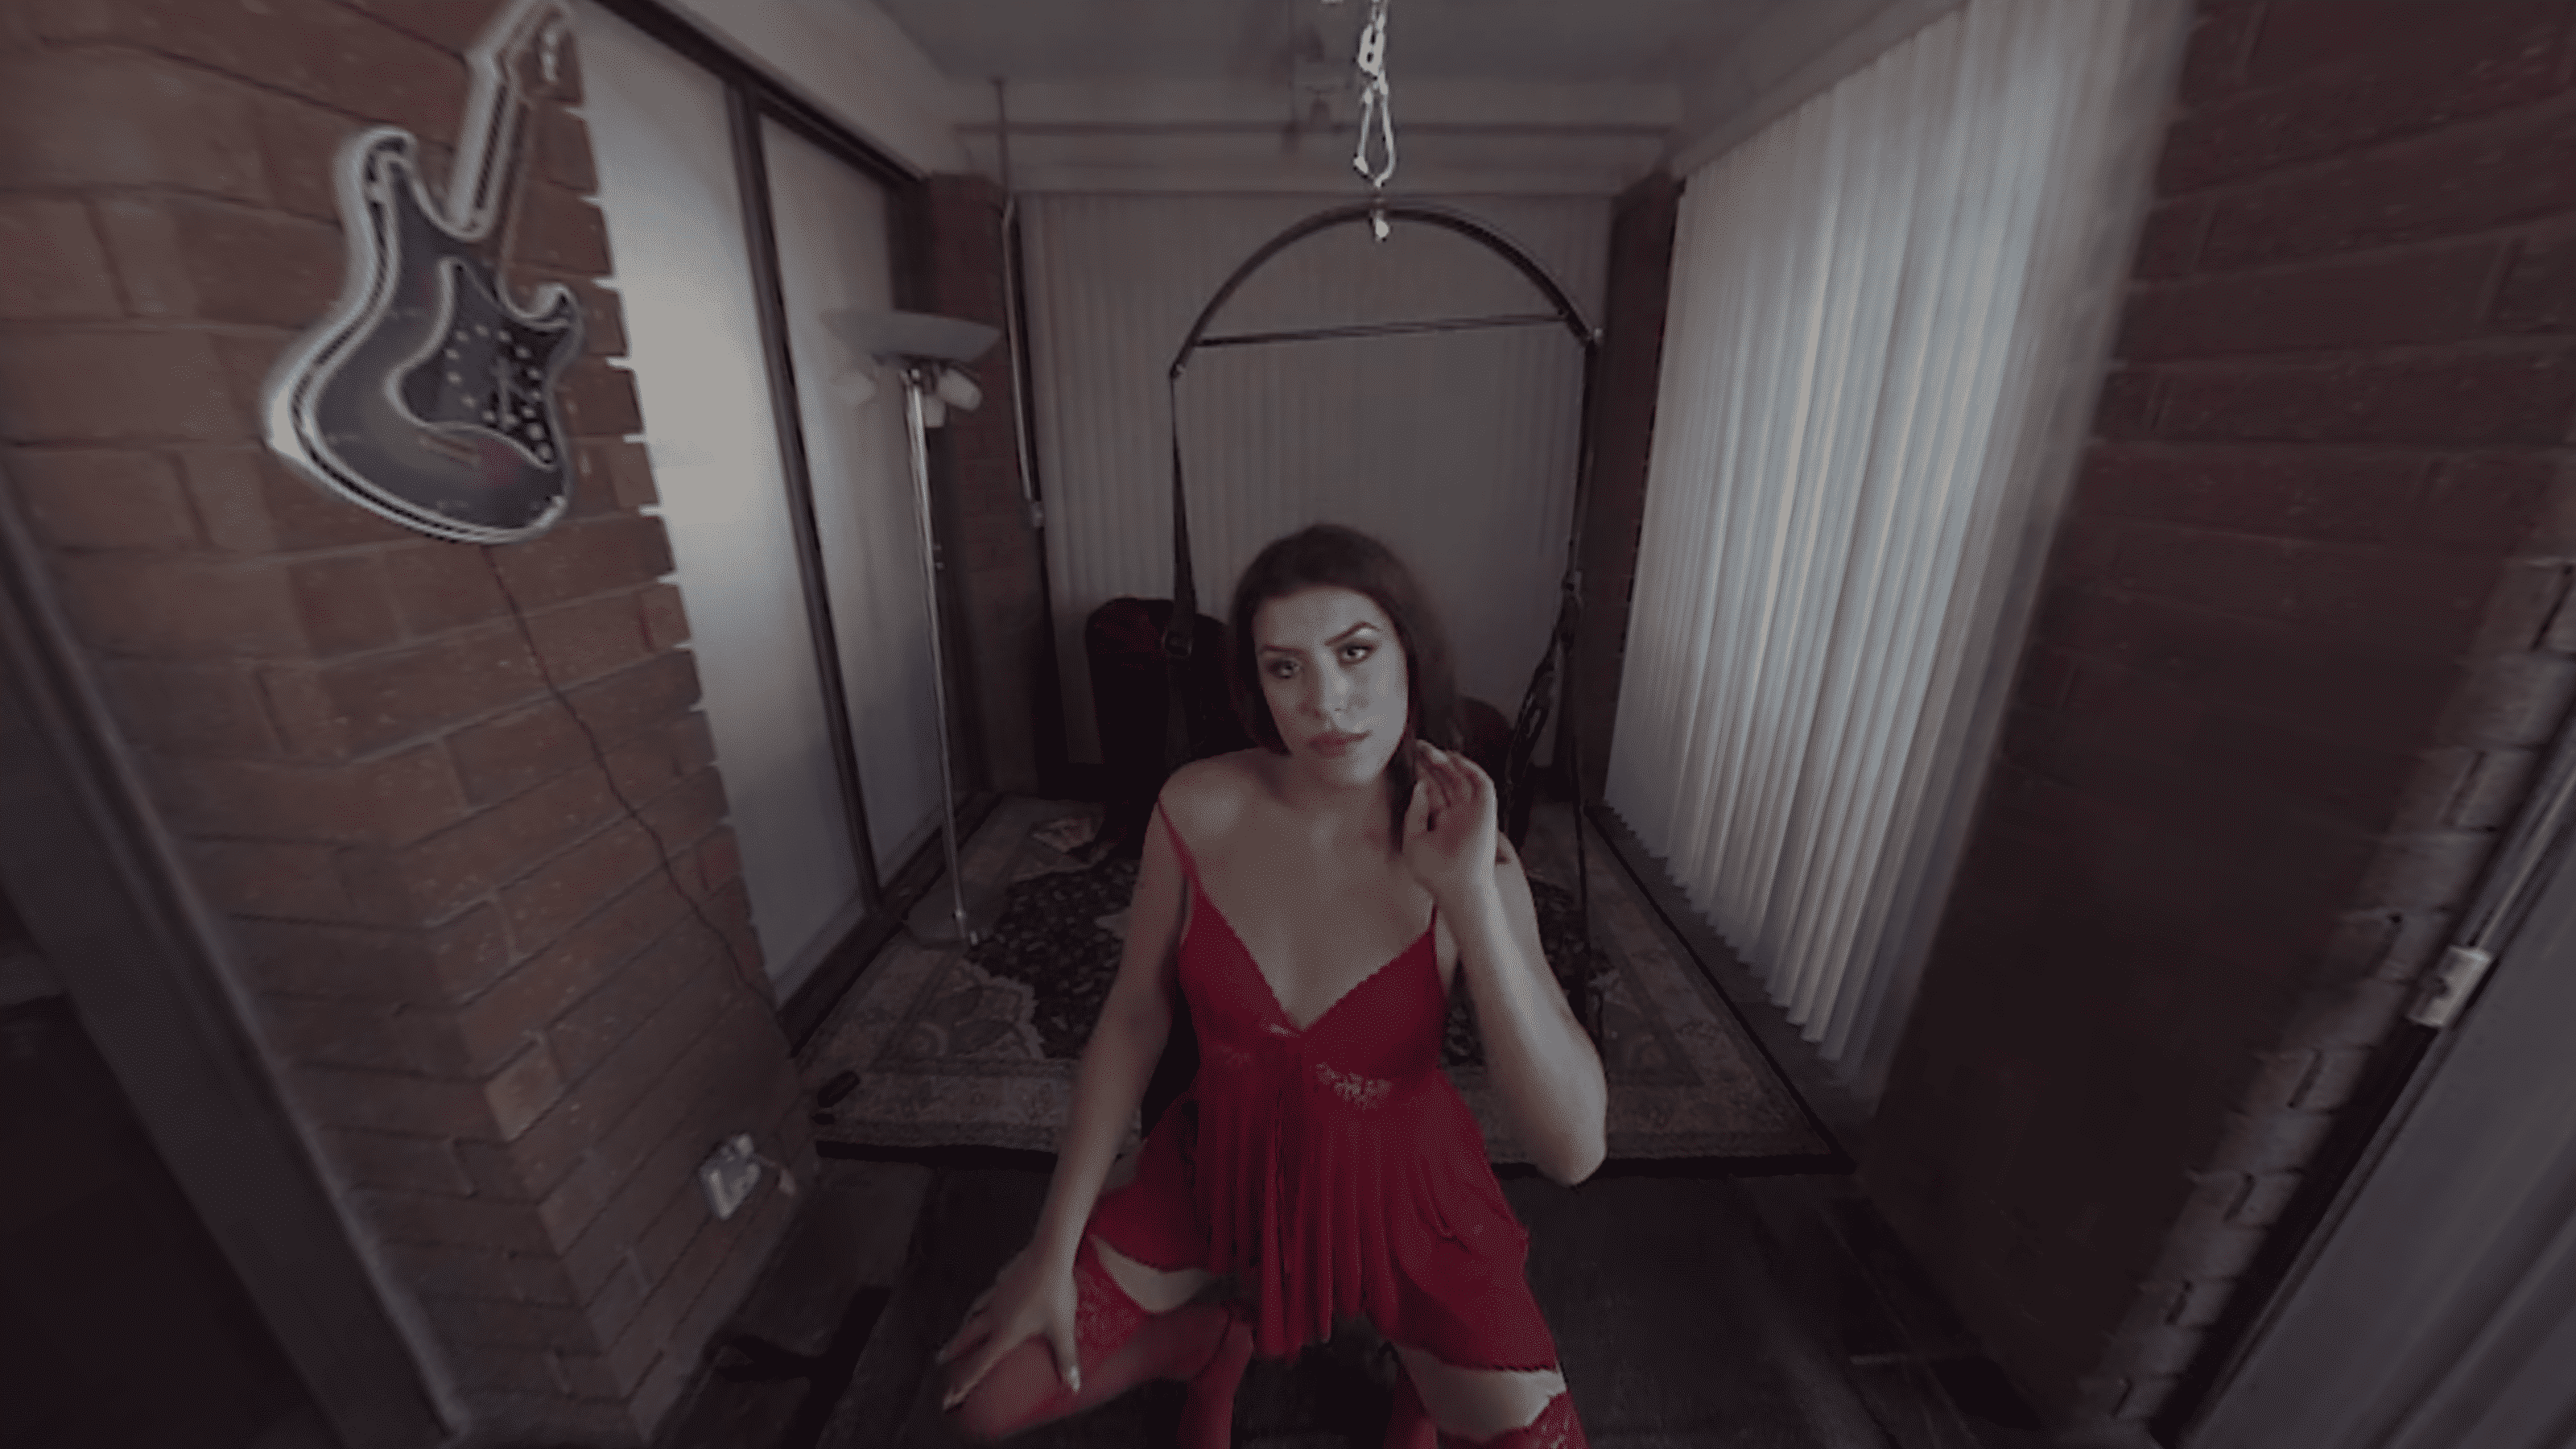 GroobyVR Trans VR Porn Featured